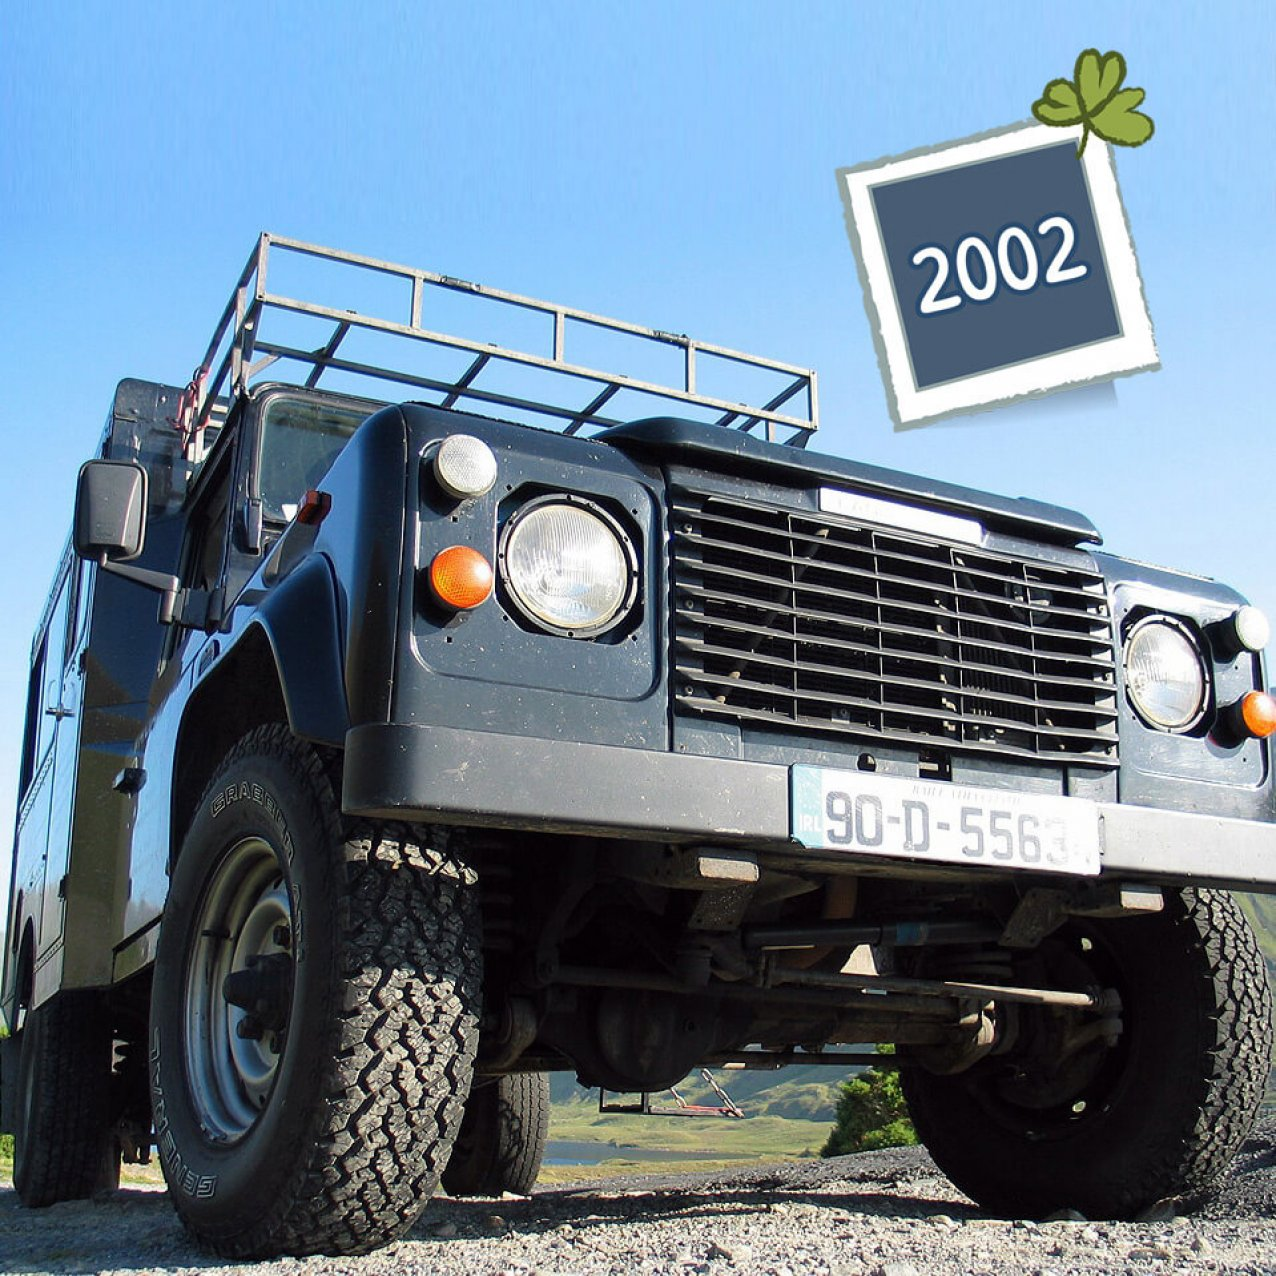 A from-the-ground perspective of the original 1990 Land Rover Defender VagaTron 4x4 tour vehicle for Vagabond Tours of Ireland